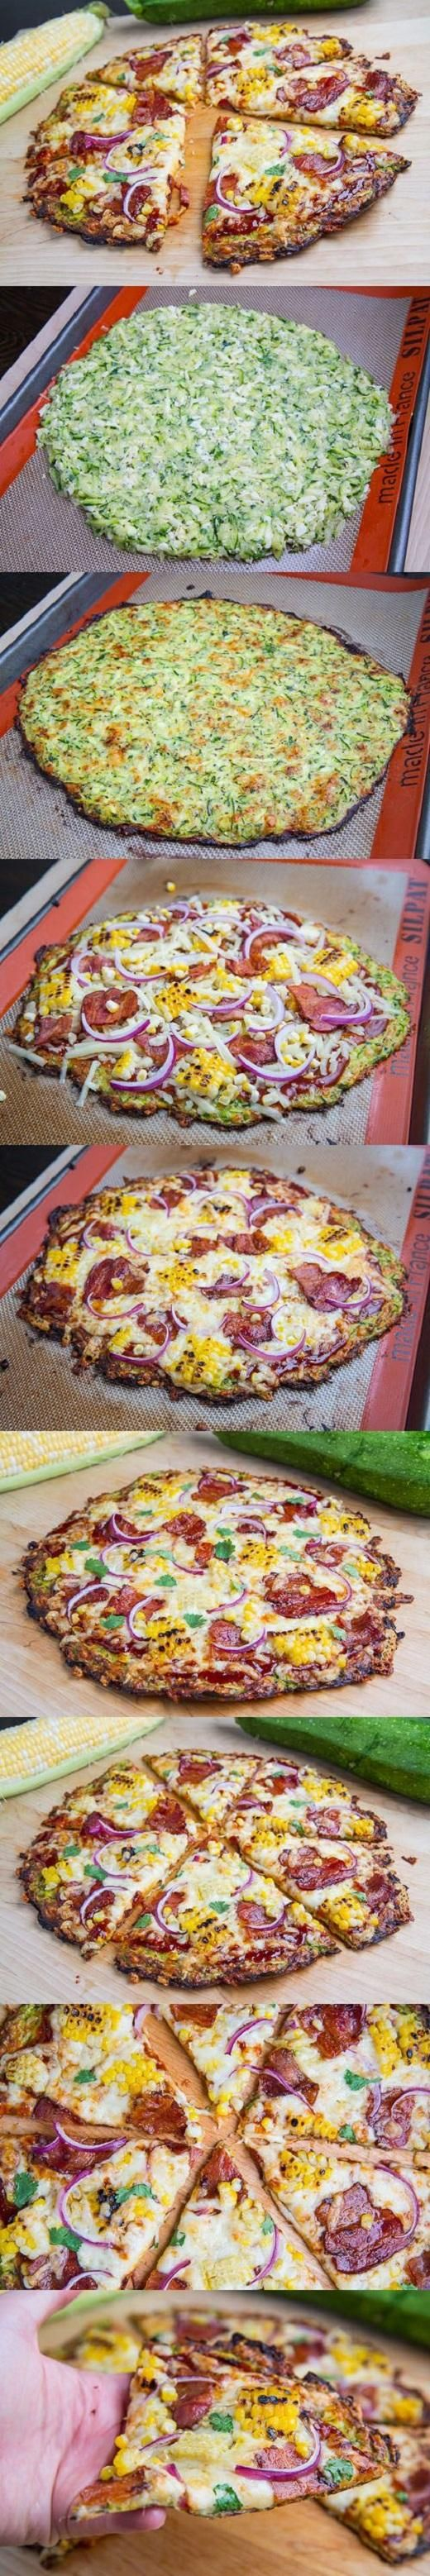 Zucchini Pizza Crust - Love with recipe